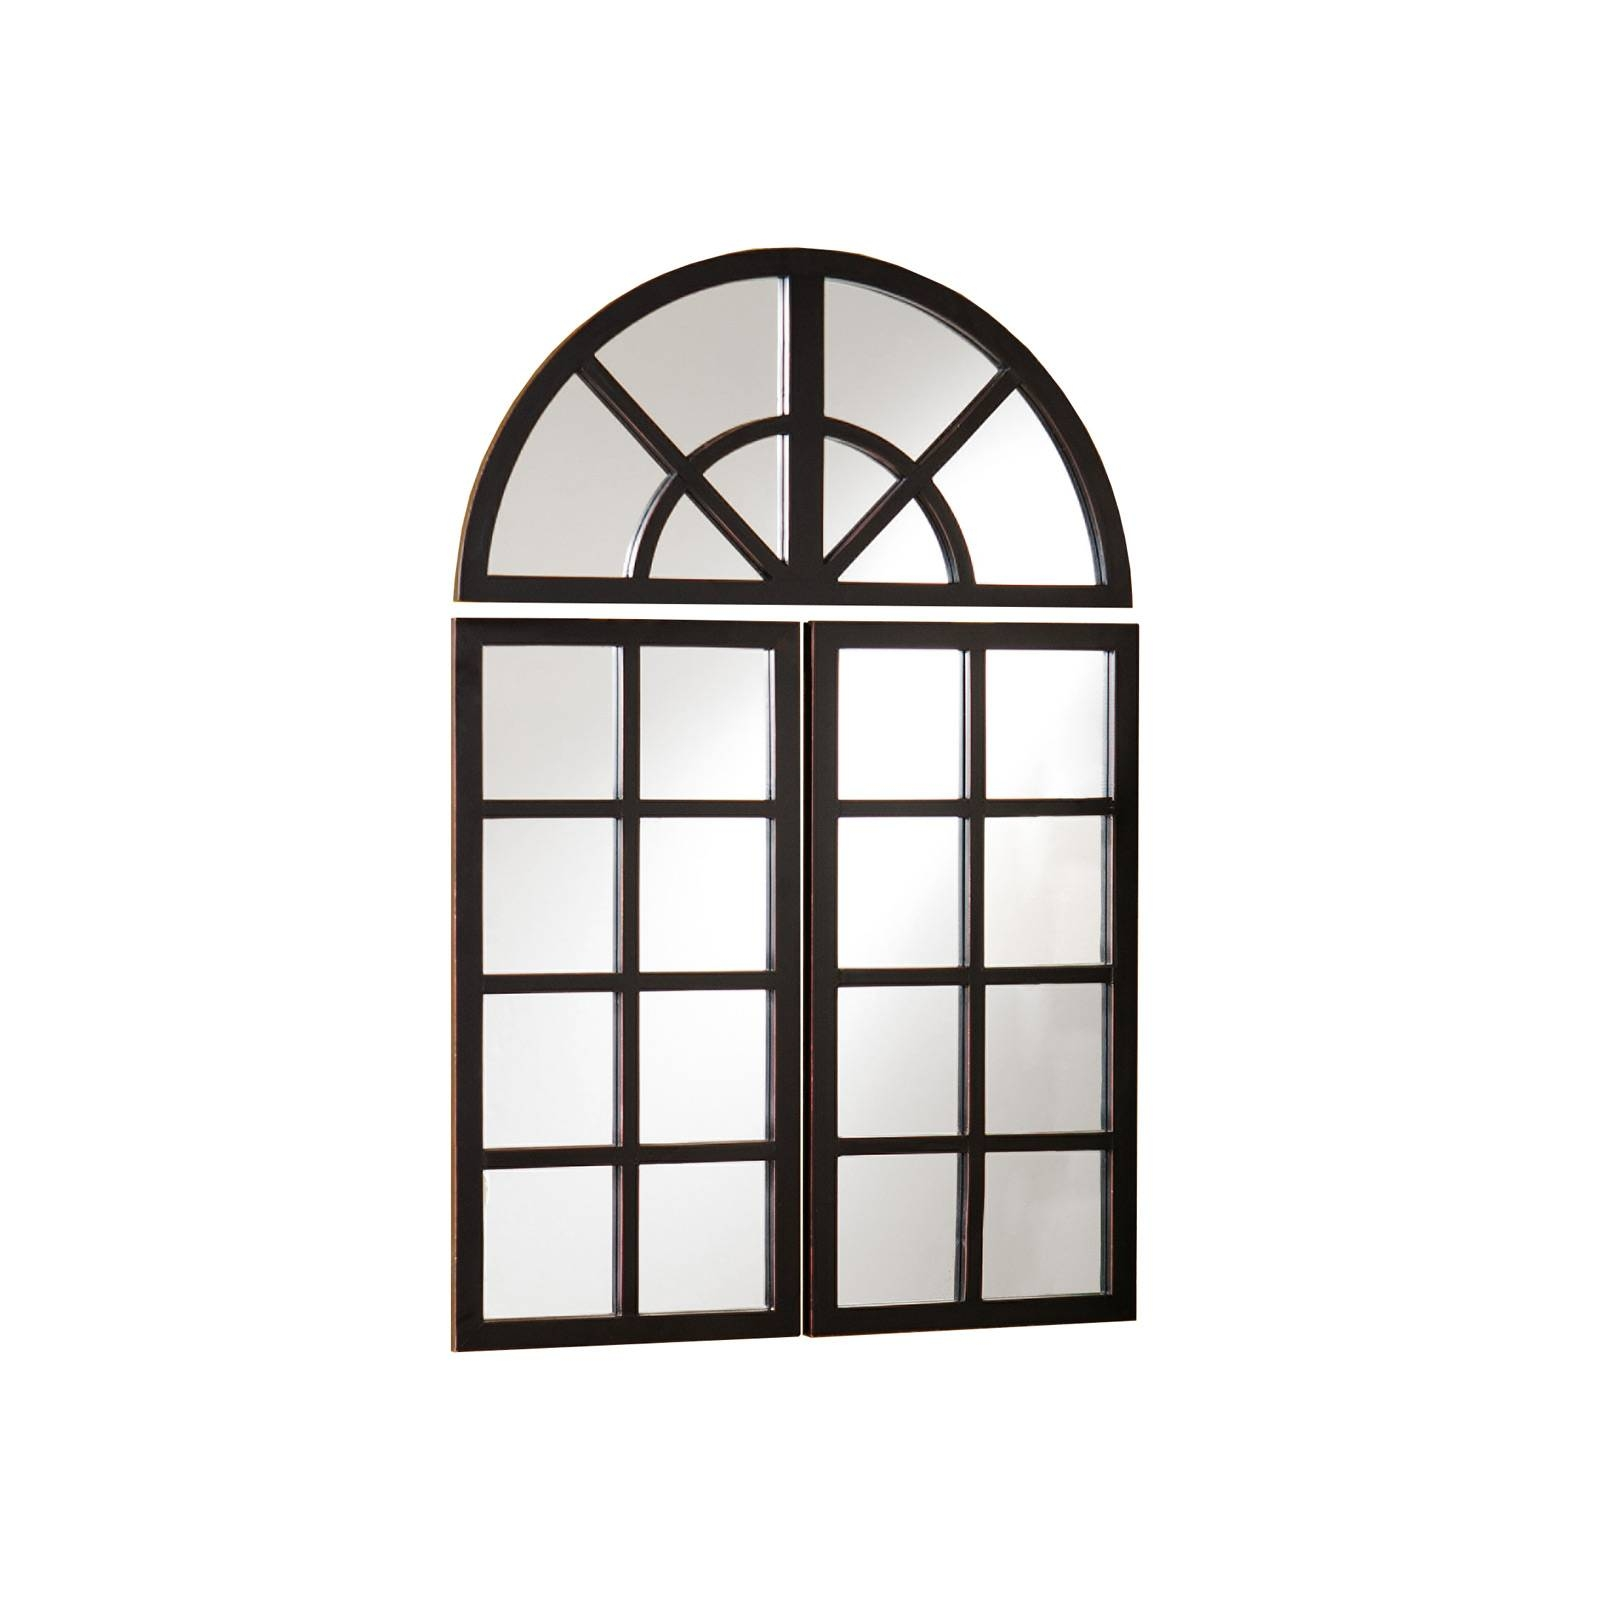 White Arched Window Mirror 79 Nice Decorating With Arched Window intended for Arched Window Mirrors (Image 22 of 25)